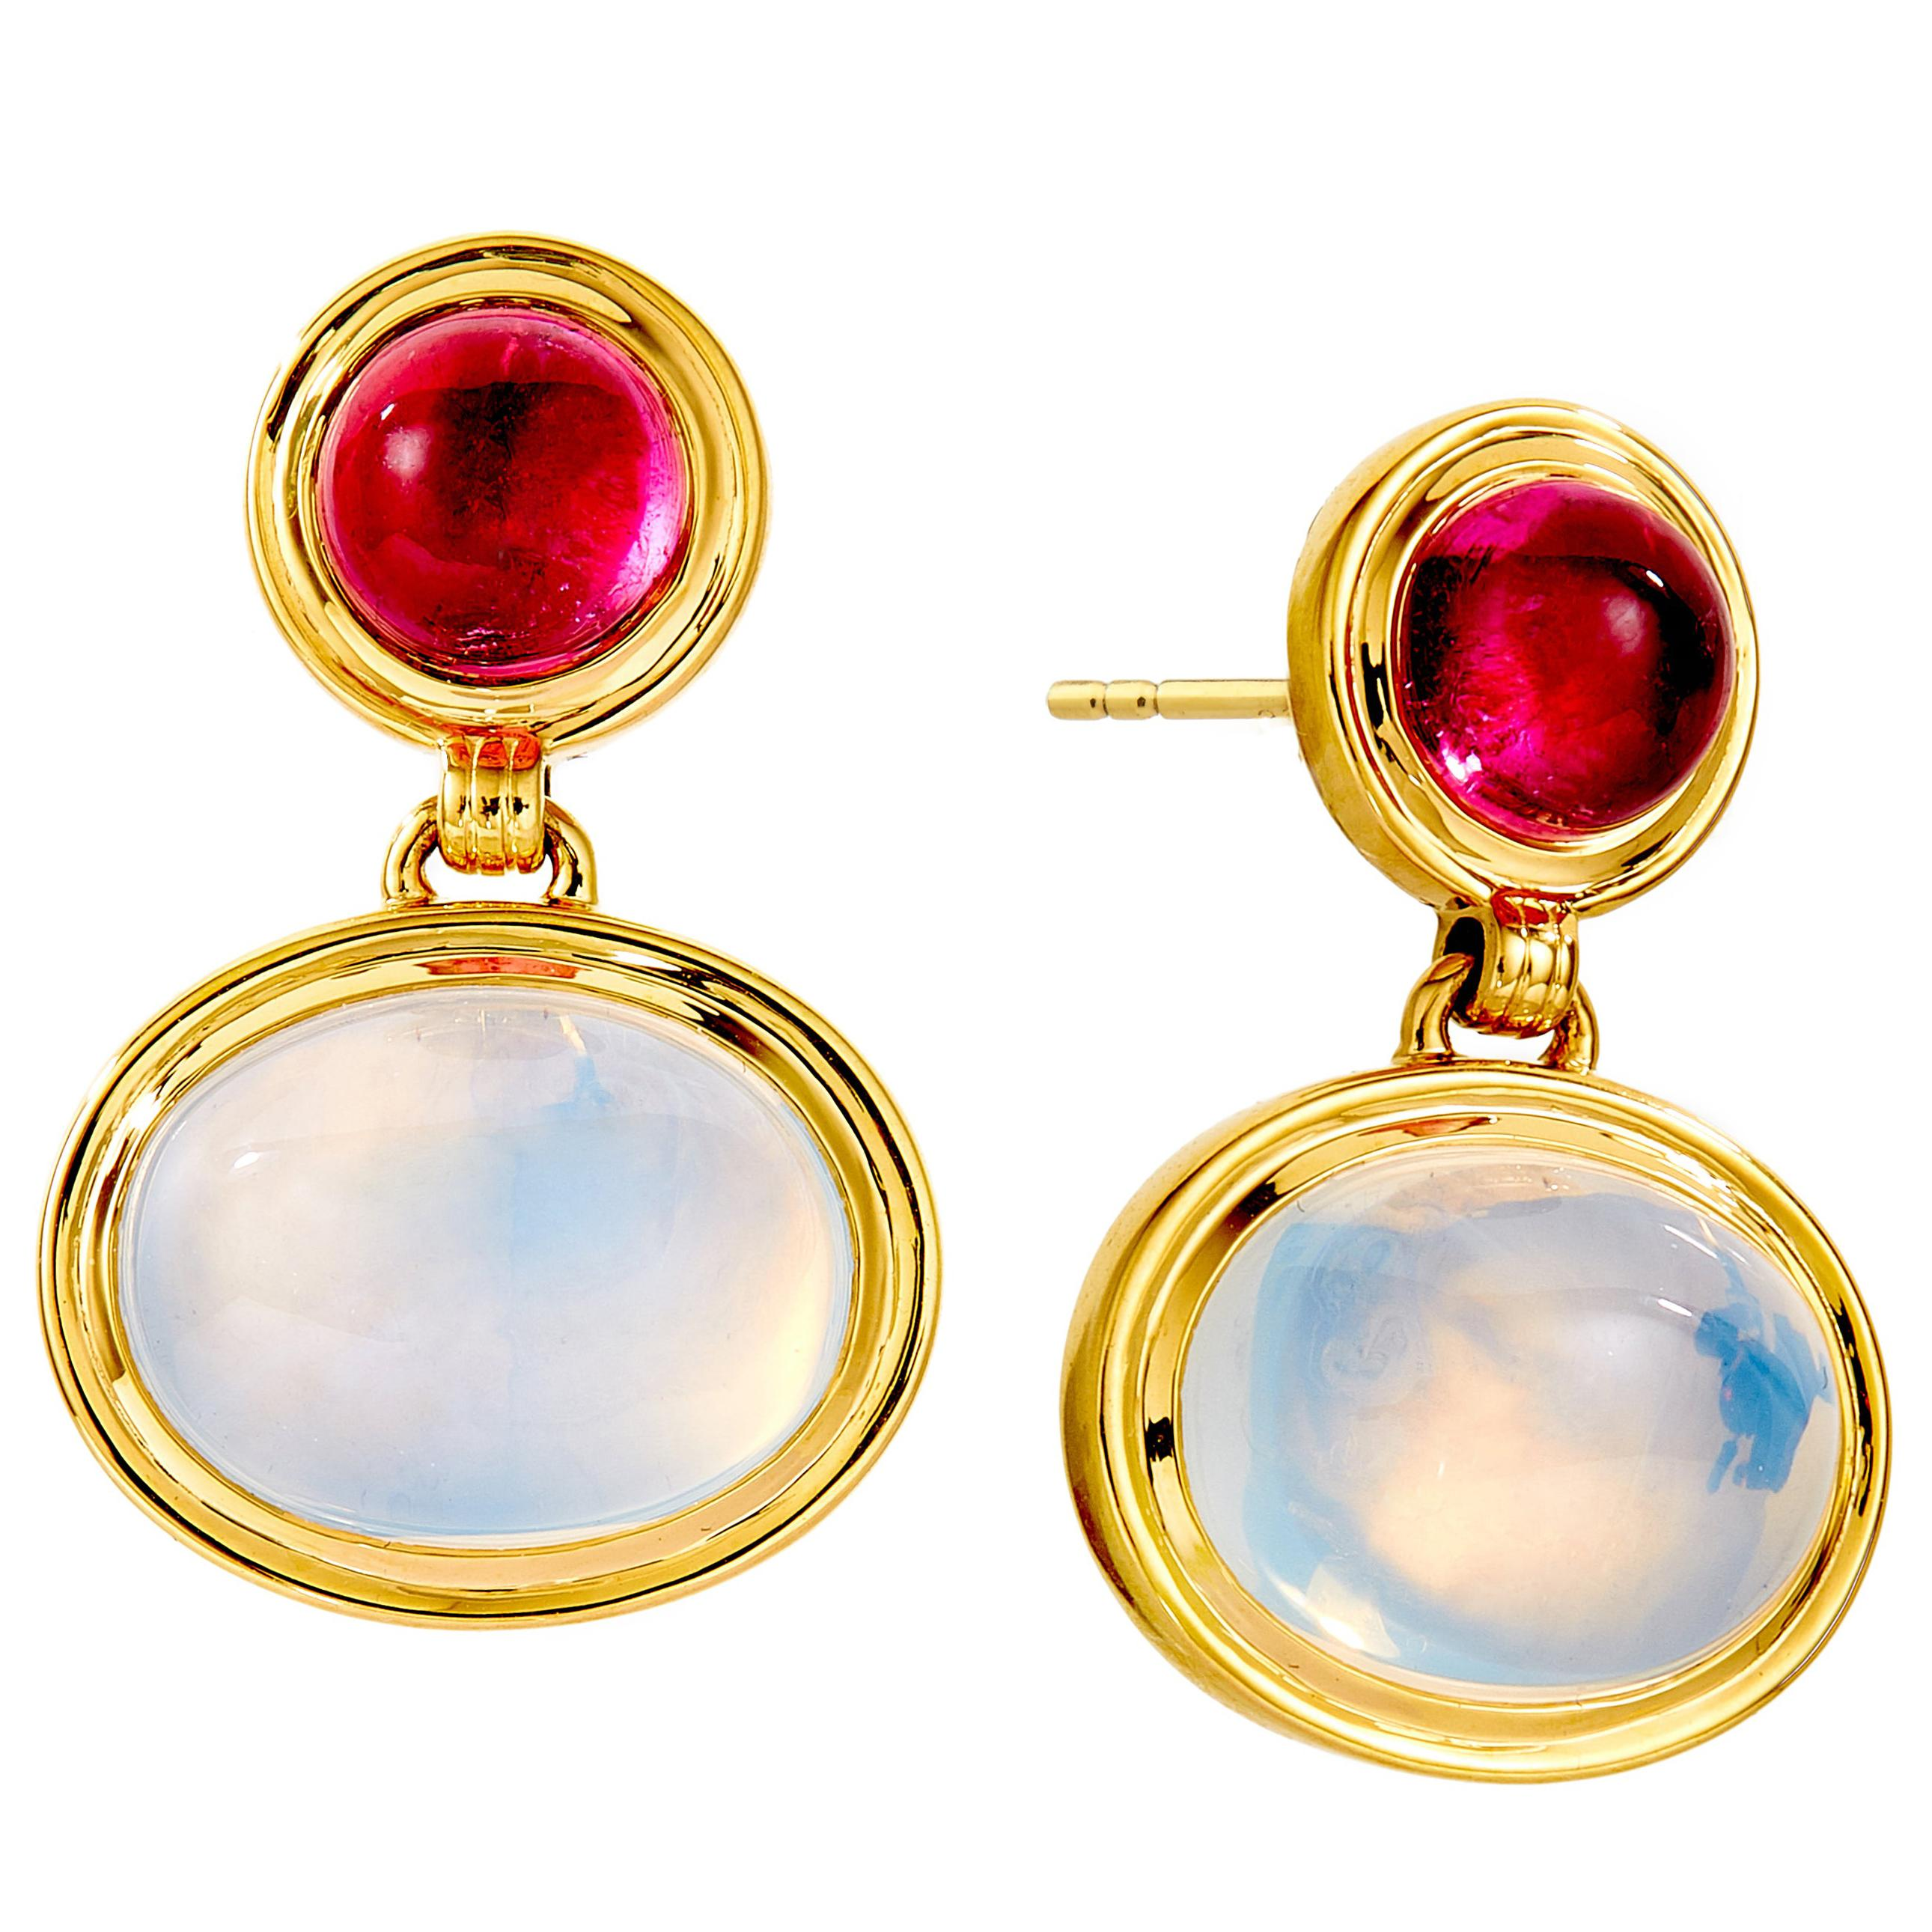 Syna Rubellite and Moon Quartz Earrings